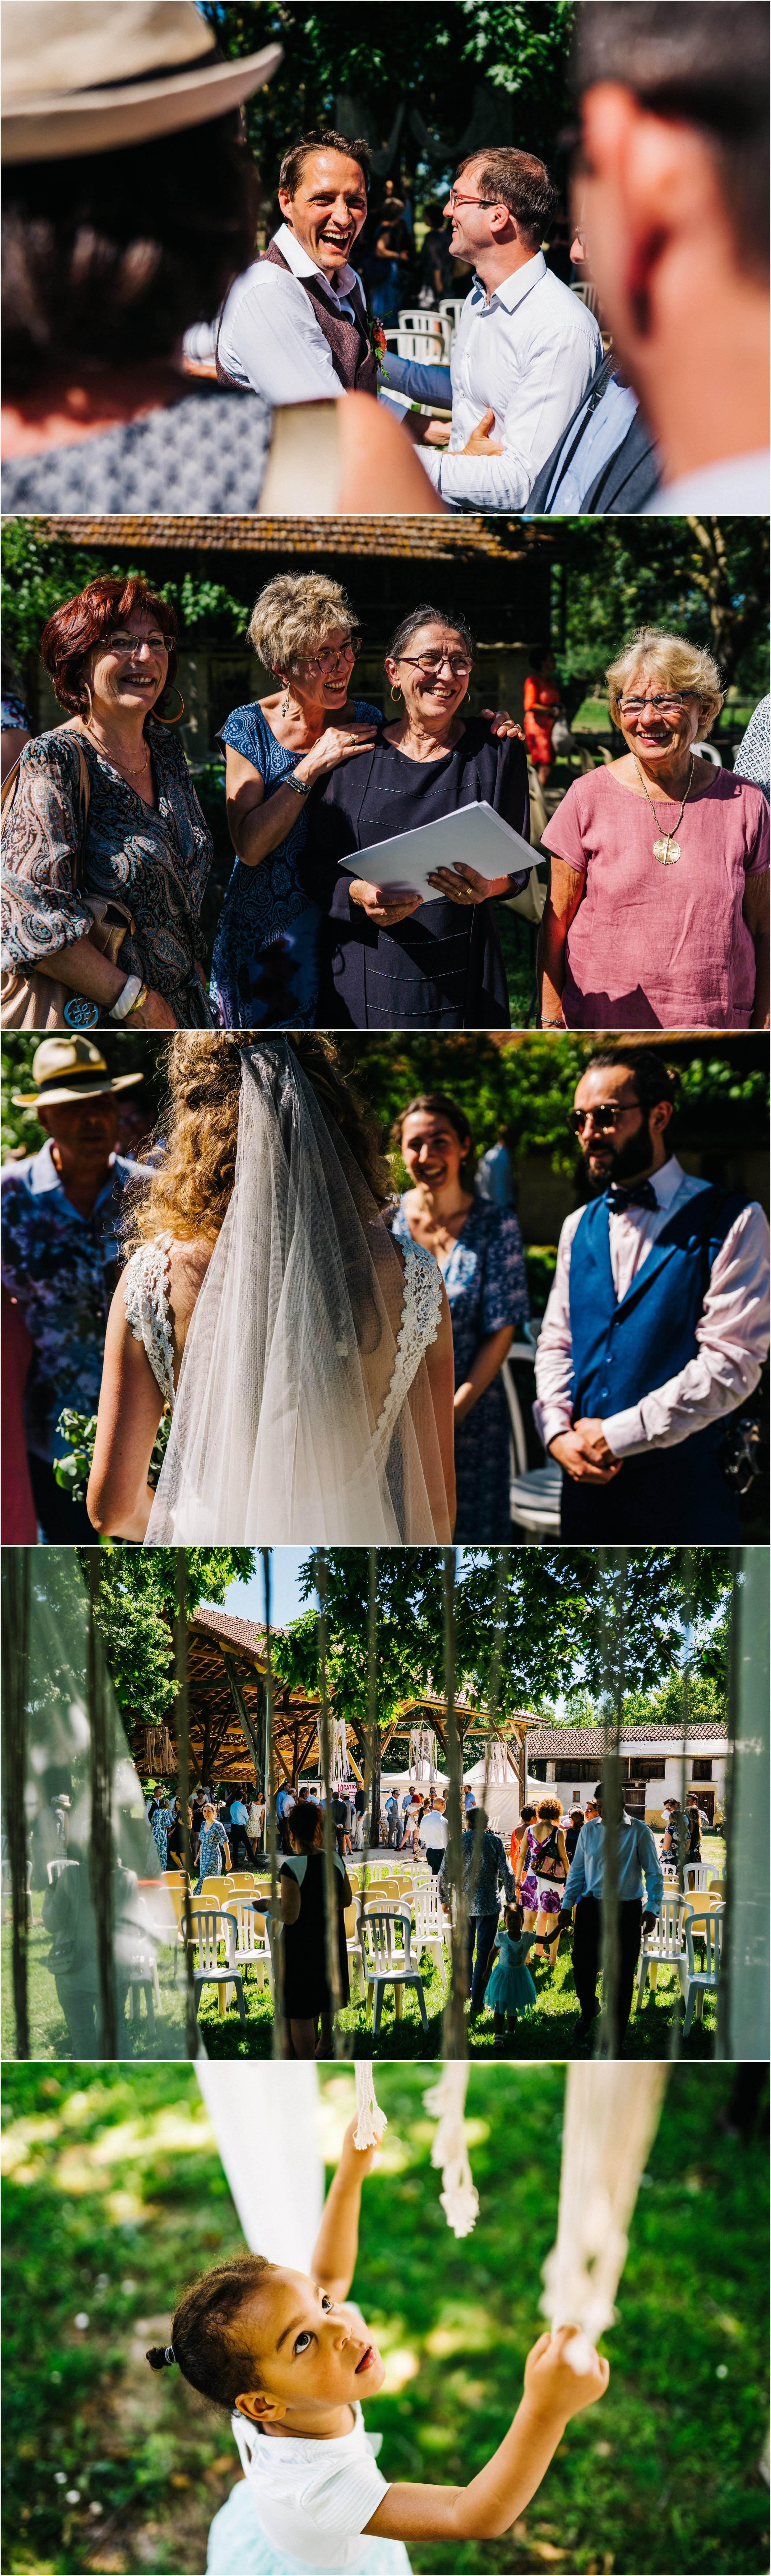 France destination garden wedding photographer_0115.jpg